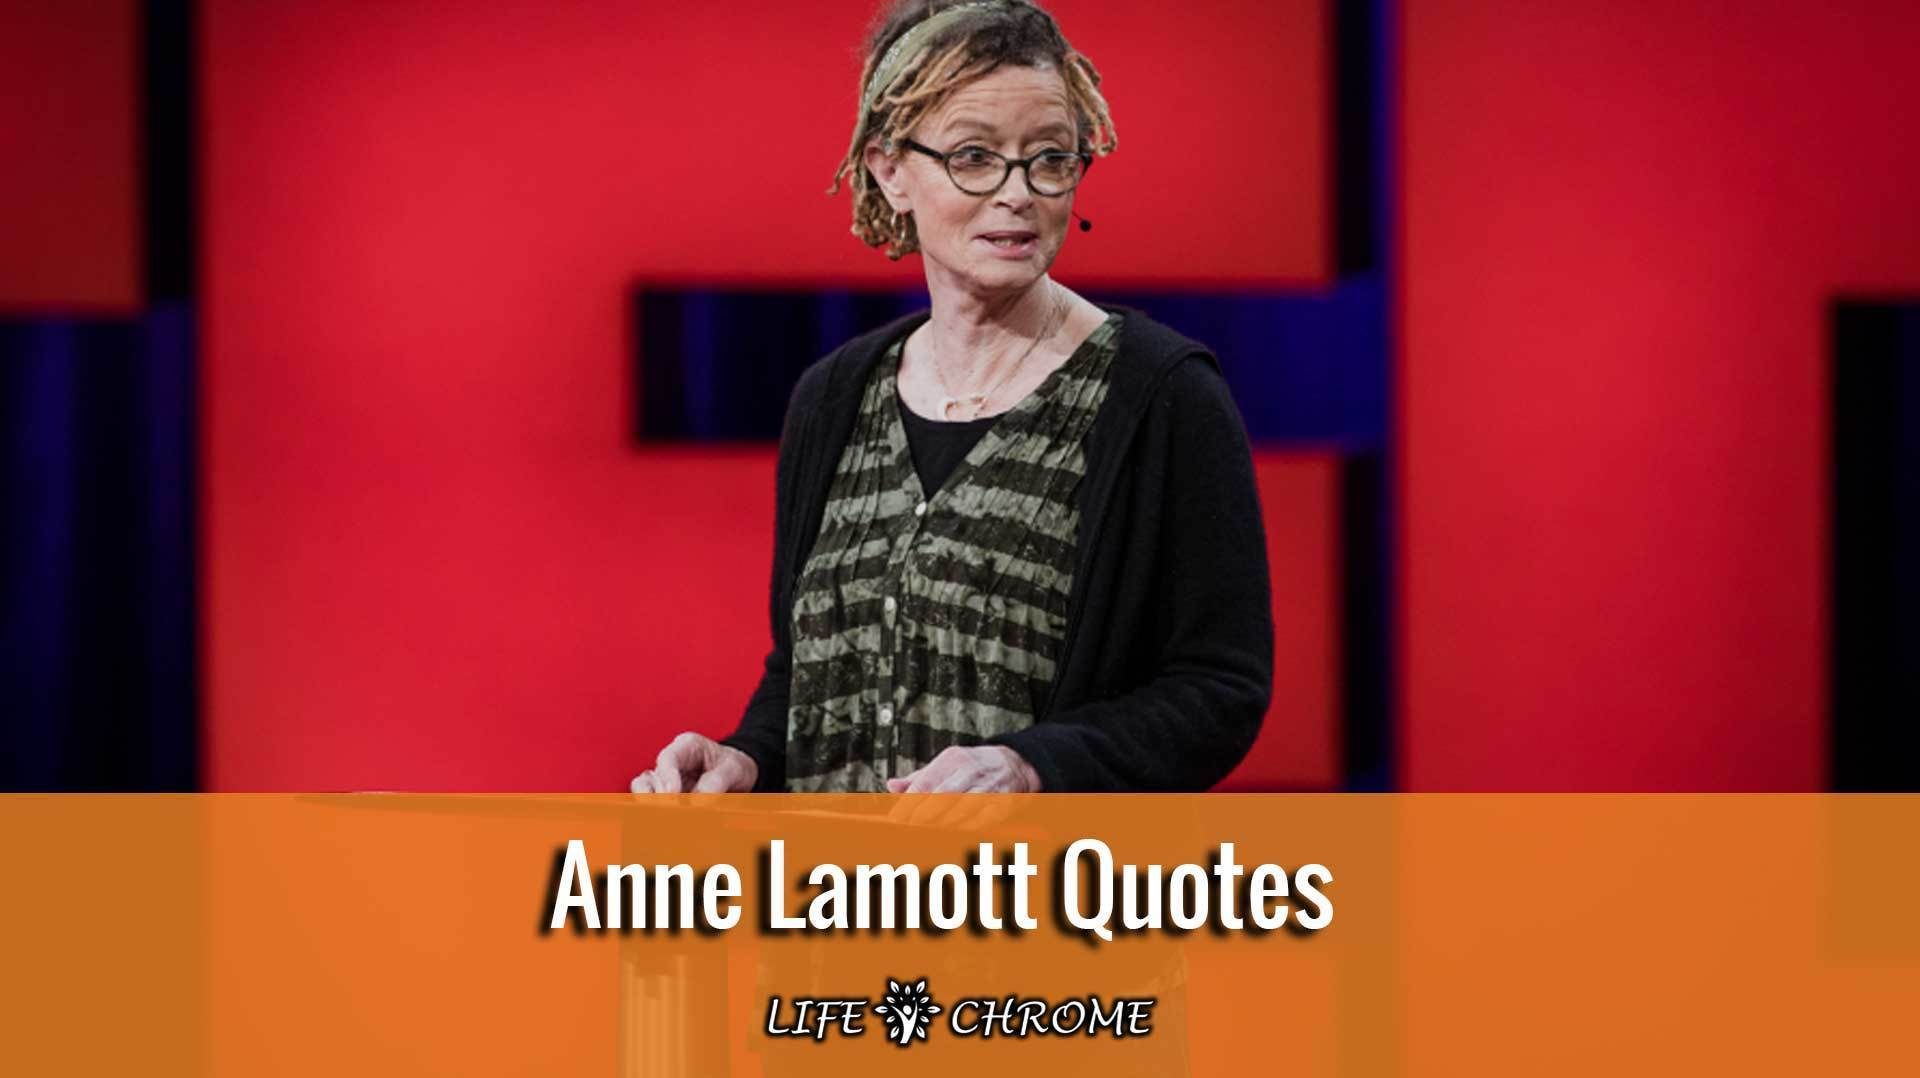 Anne Lamott Quotes